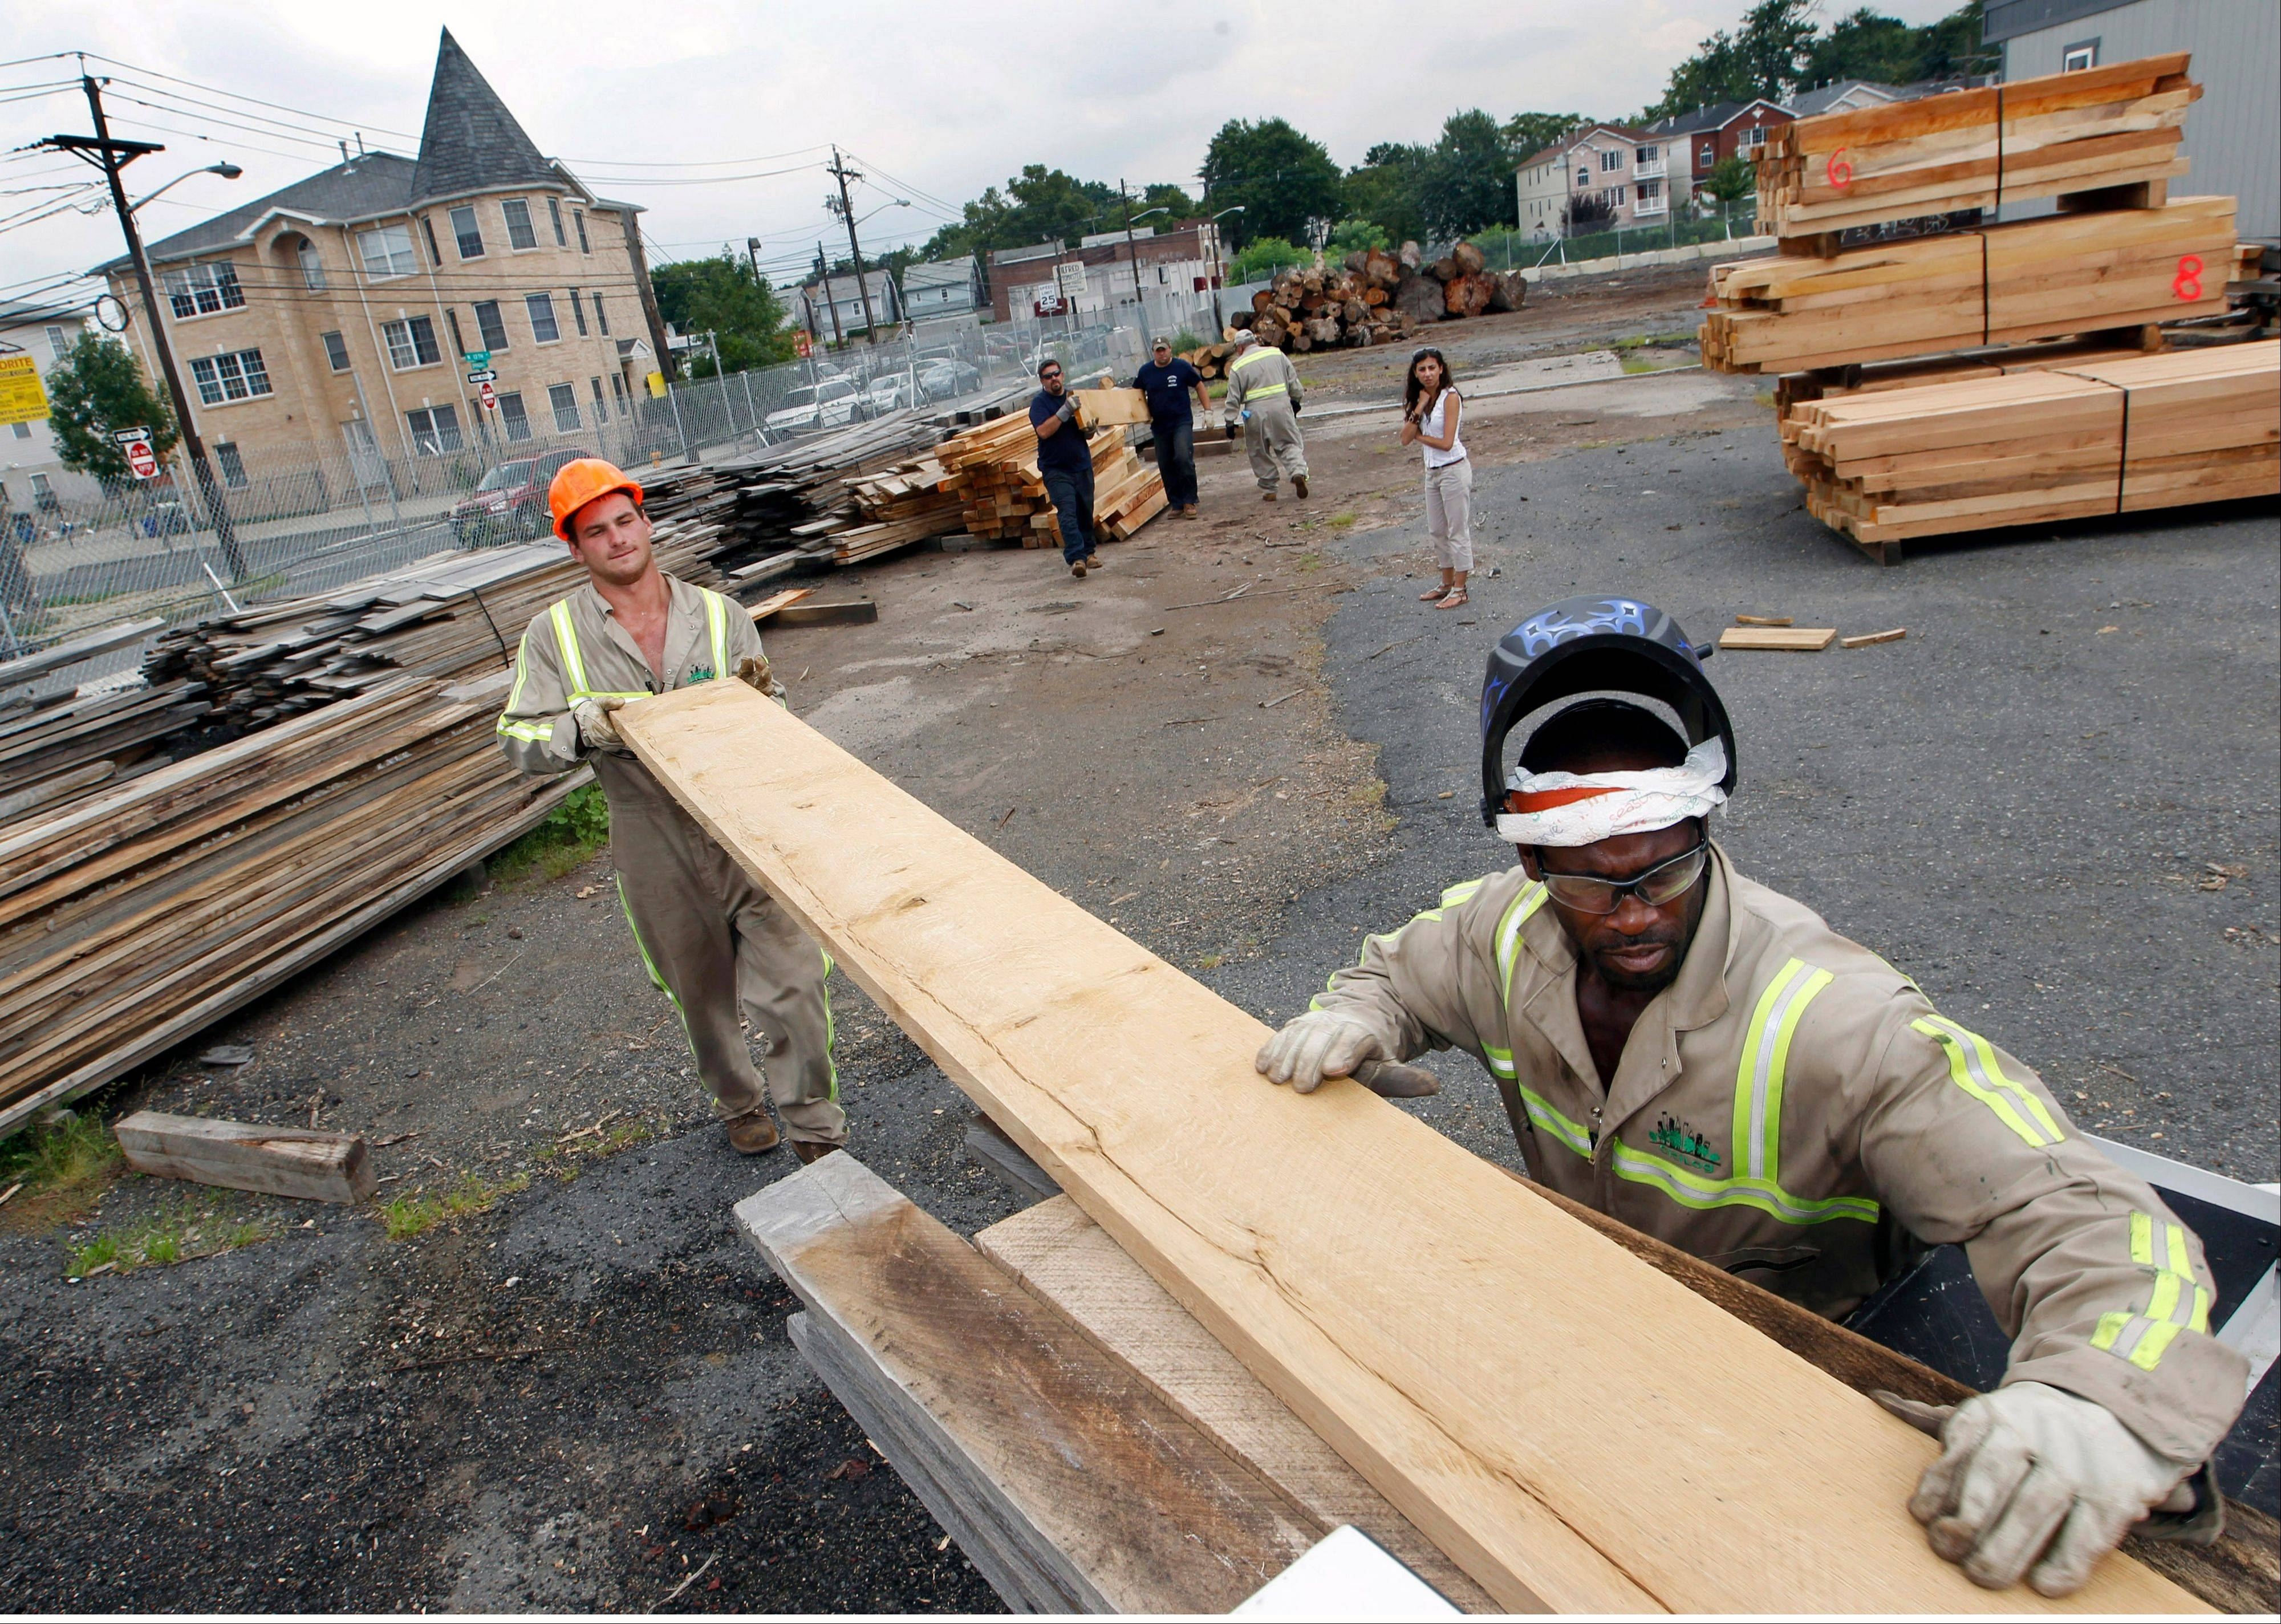 Workers Wiil Warmbold, left, and Charles Davidson load wood planks recently cut from discarded tree trunks into a truck for the town of Secaucus, N.J., at Citilog in Newark, N.J.